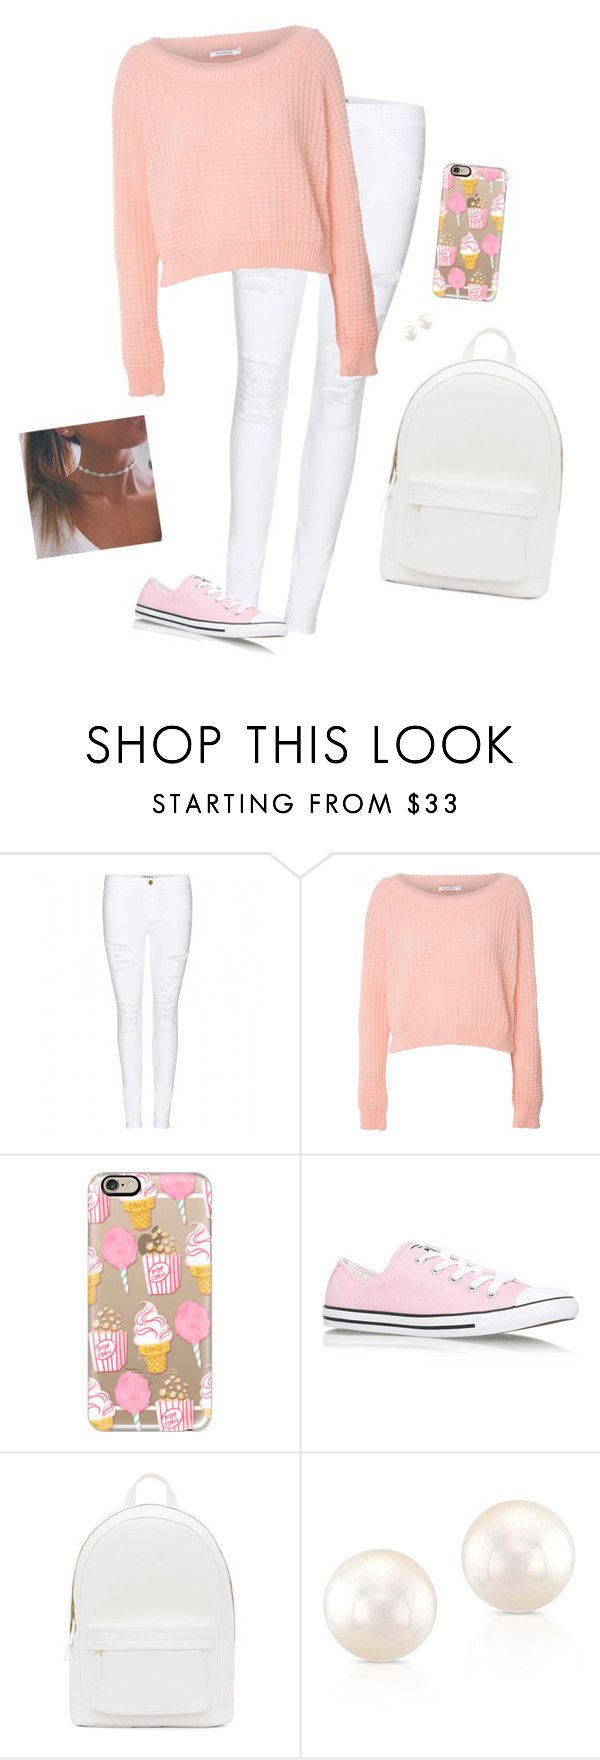 """""""#BTSWithHana"""" by hanakdudley ❤ liked on Polyvore featuring Frame Denim, Glamorous, Casetify, Converse, PB 0110 and BTSWithHana"""